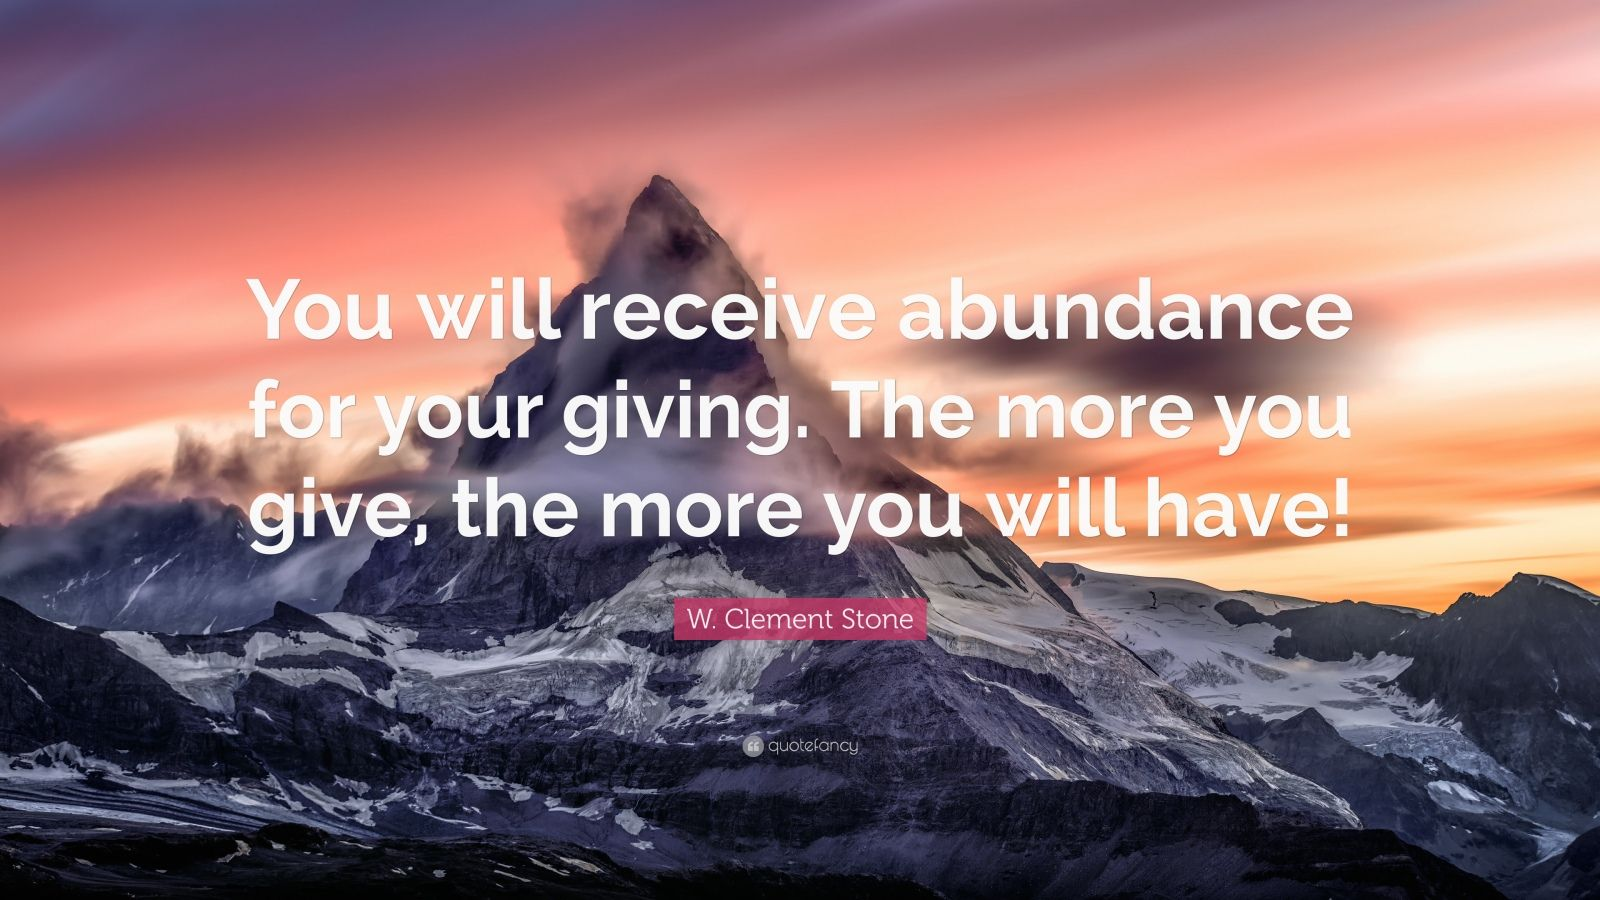 """W. Clement Stone Quote: """"You will receive abundance for your giving. The more you give, the more you will have!"""""""